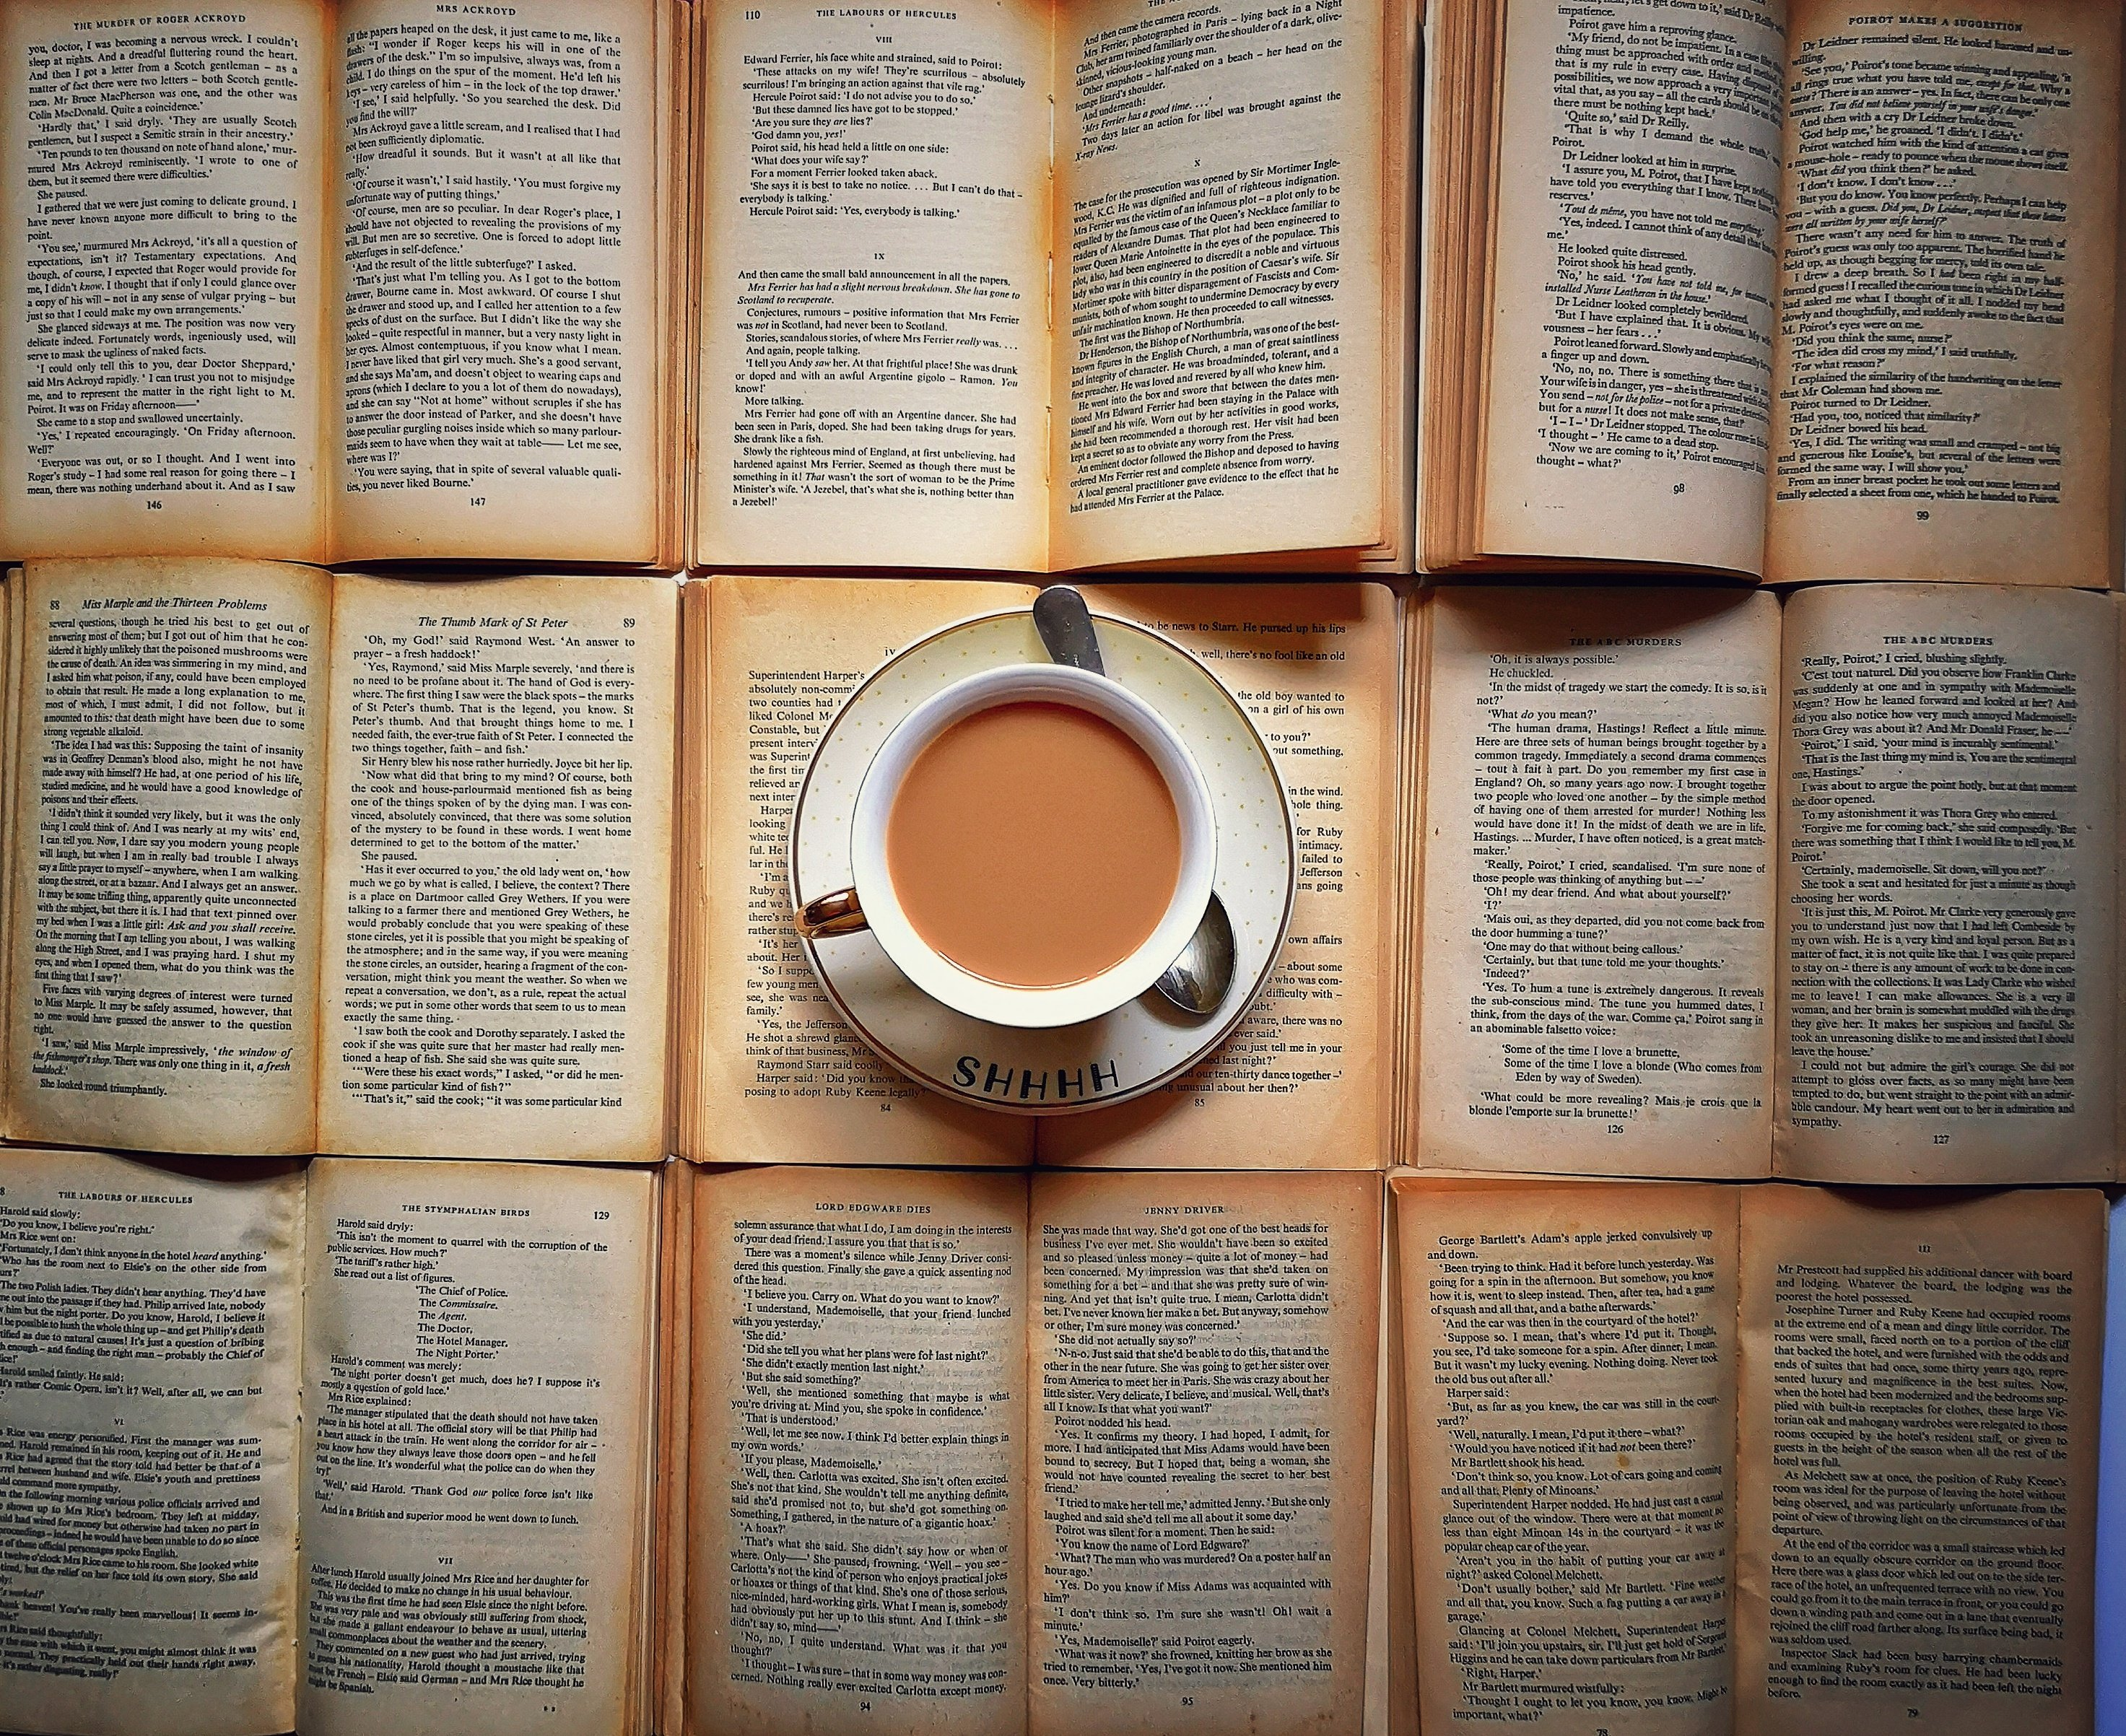 Teacup on top of vintage books.